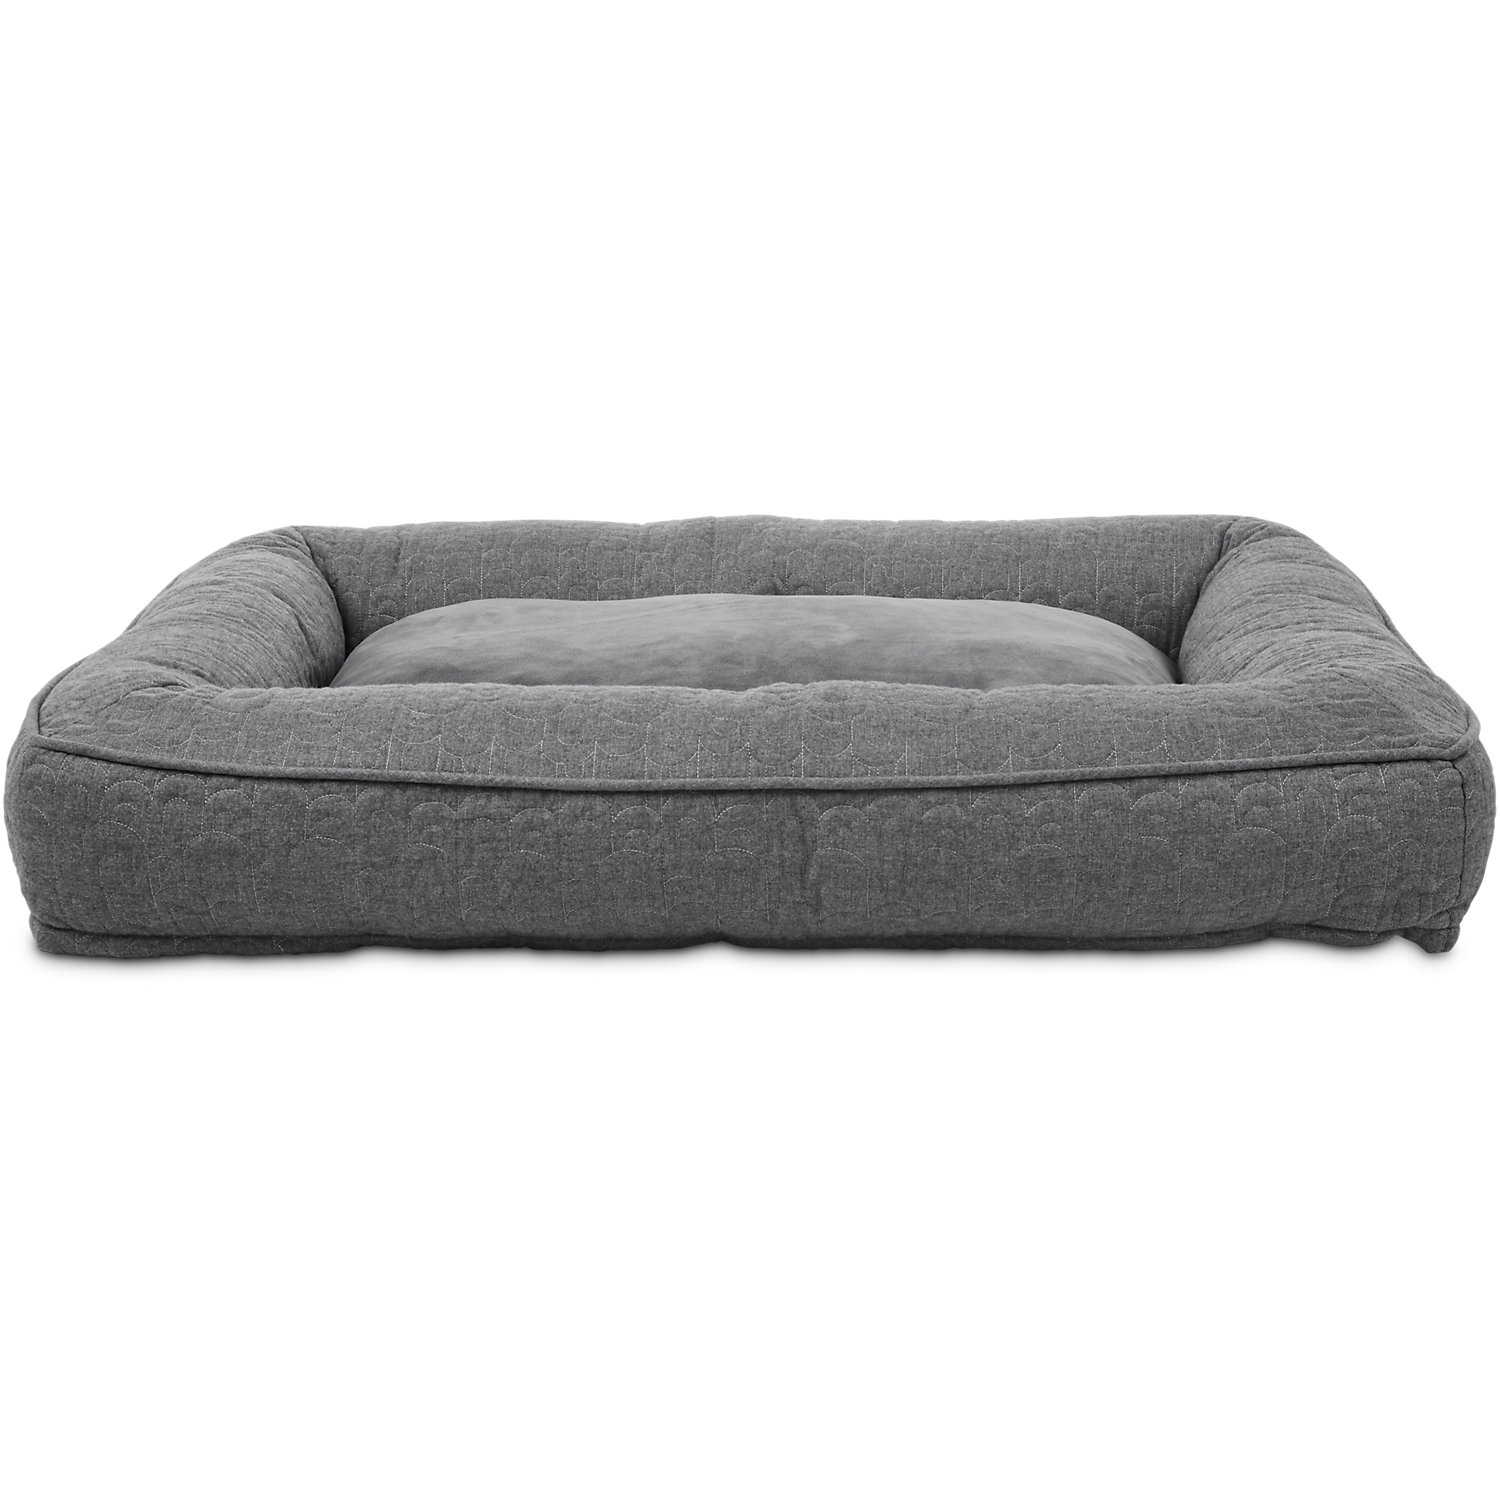 Serenity Gray Nester Dog Bed